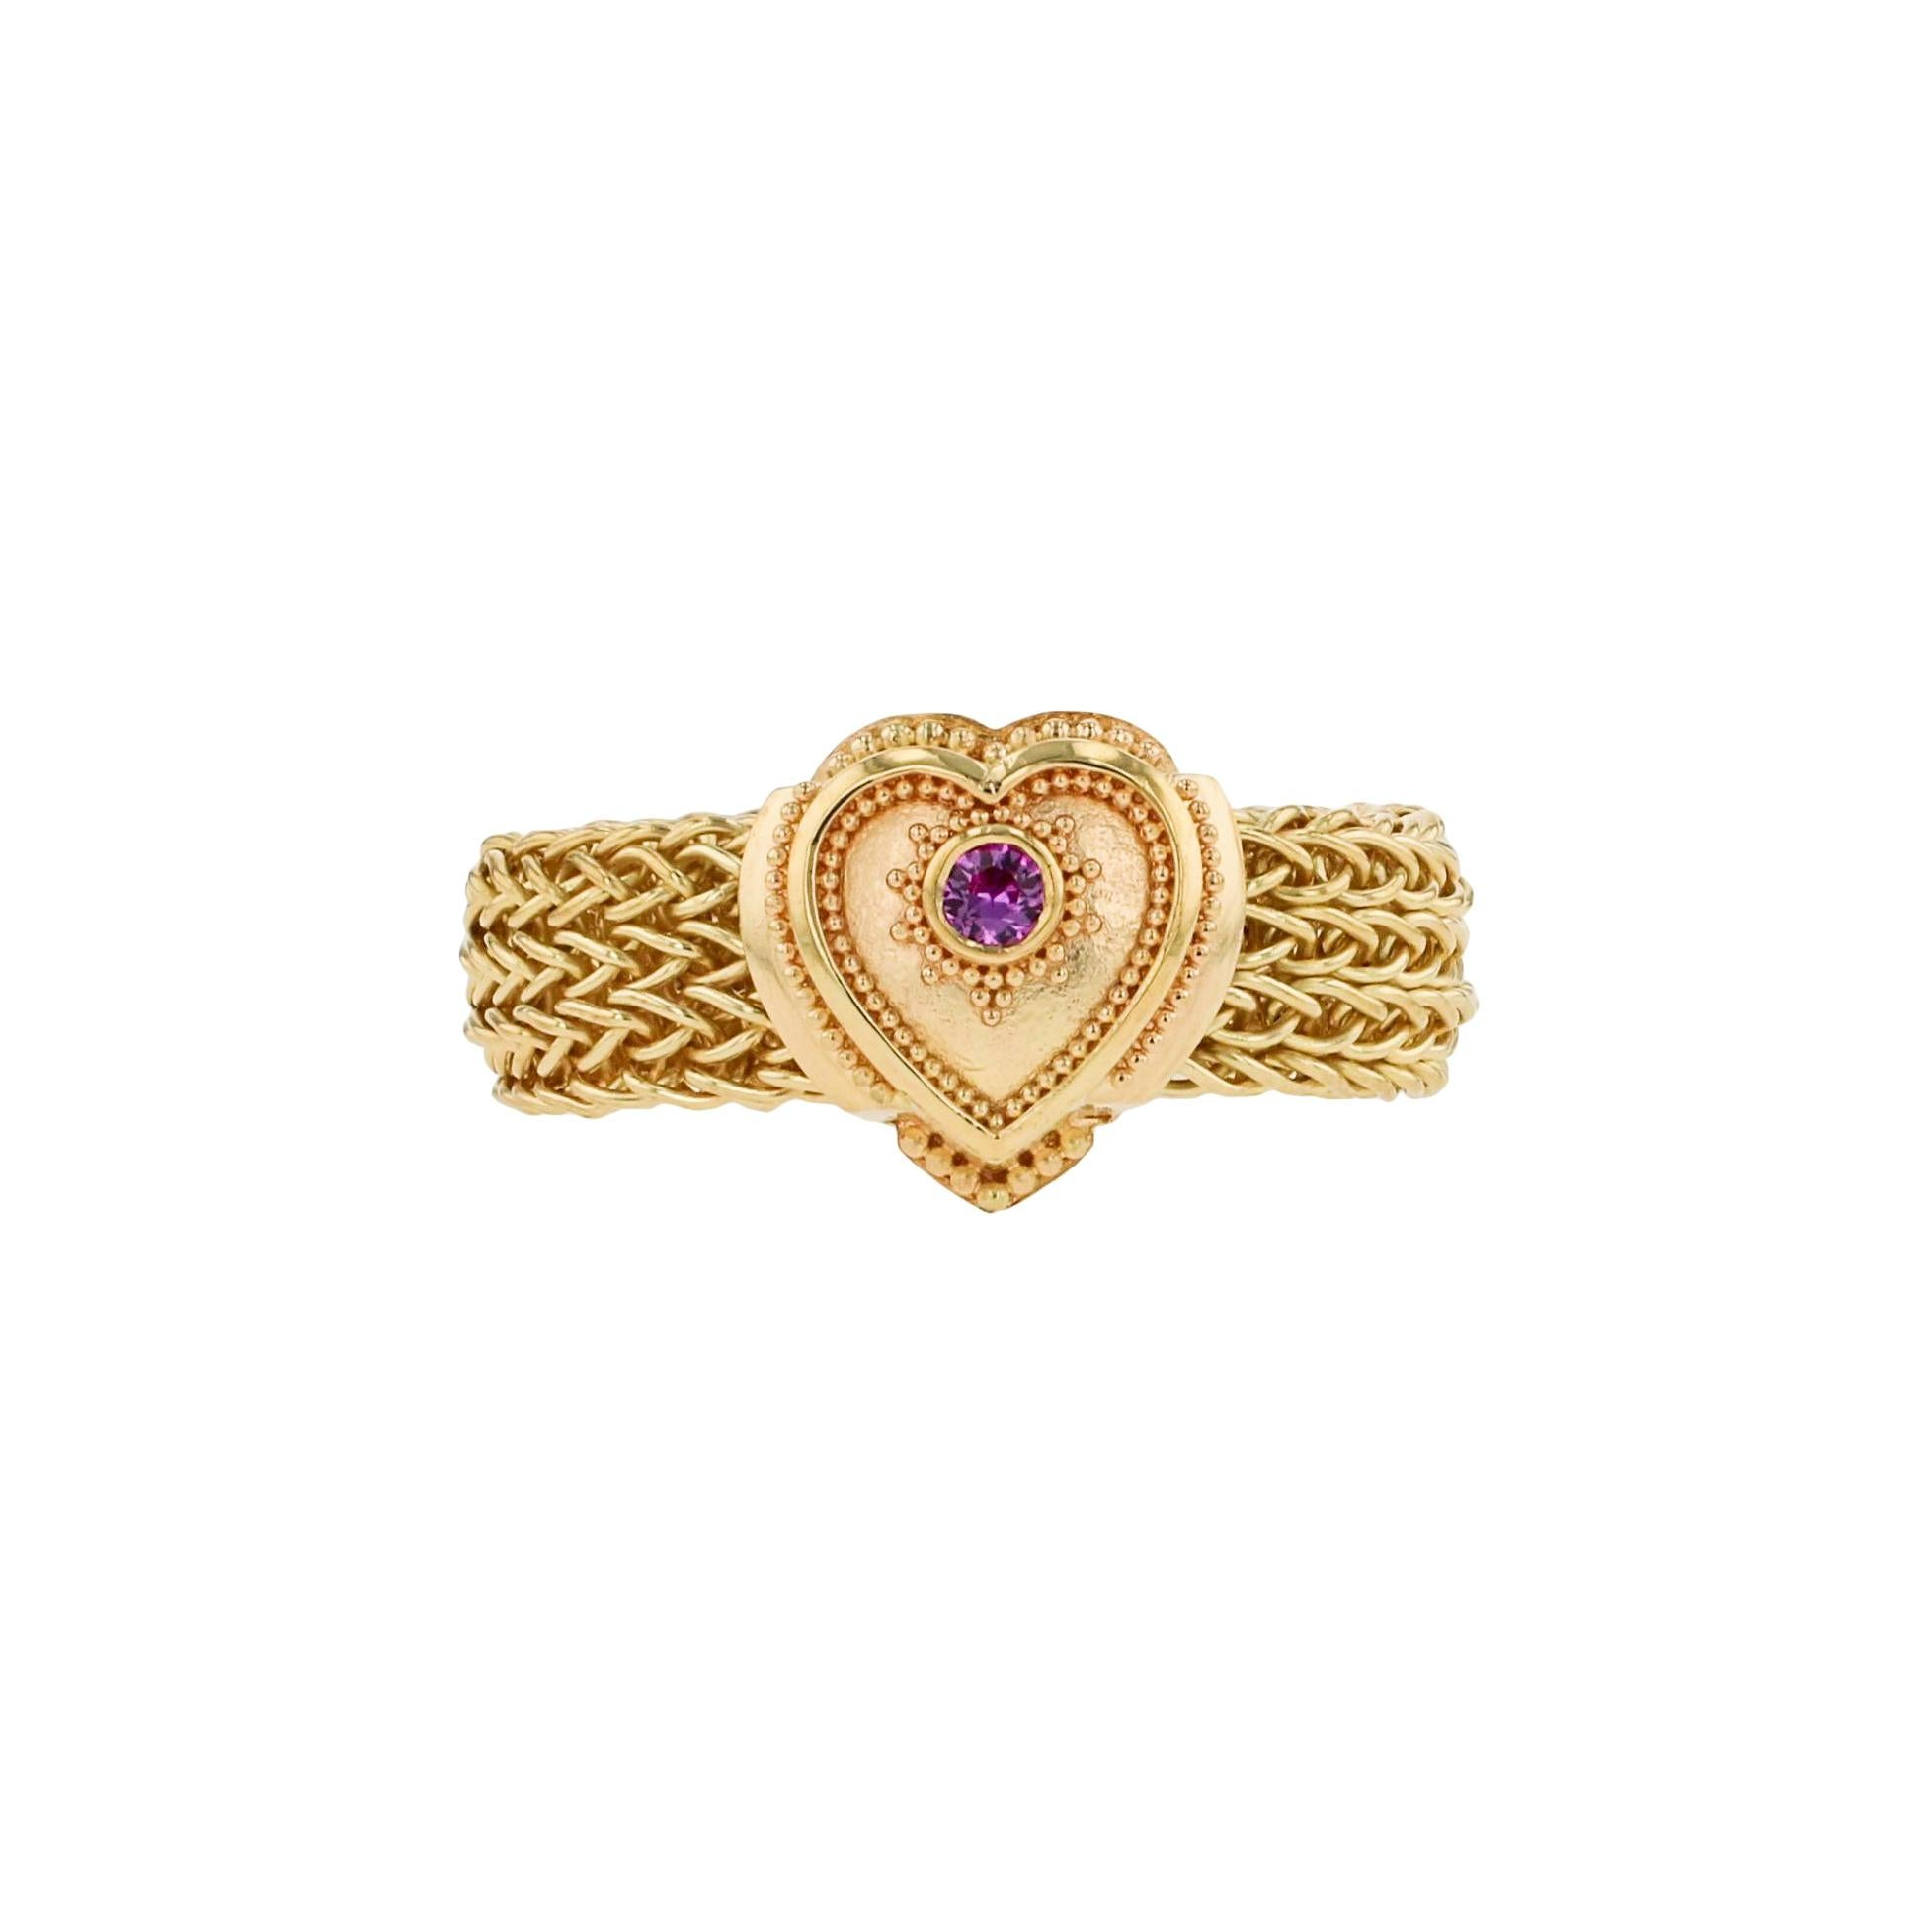 Kent Raible 18 karat Gold and Pink Sapphire Heart Fashion Ring with Granulation